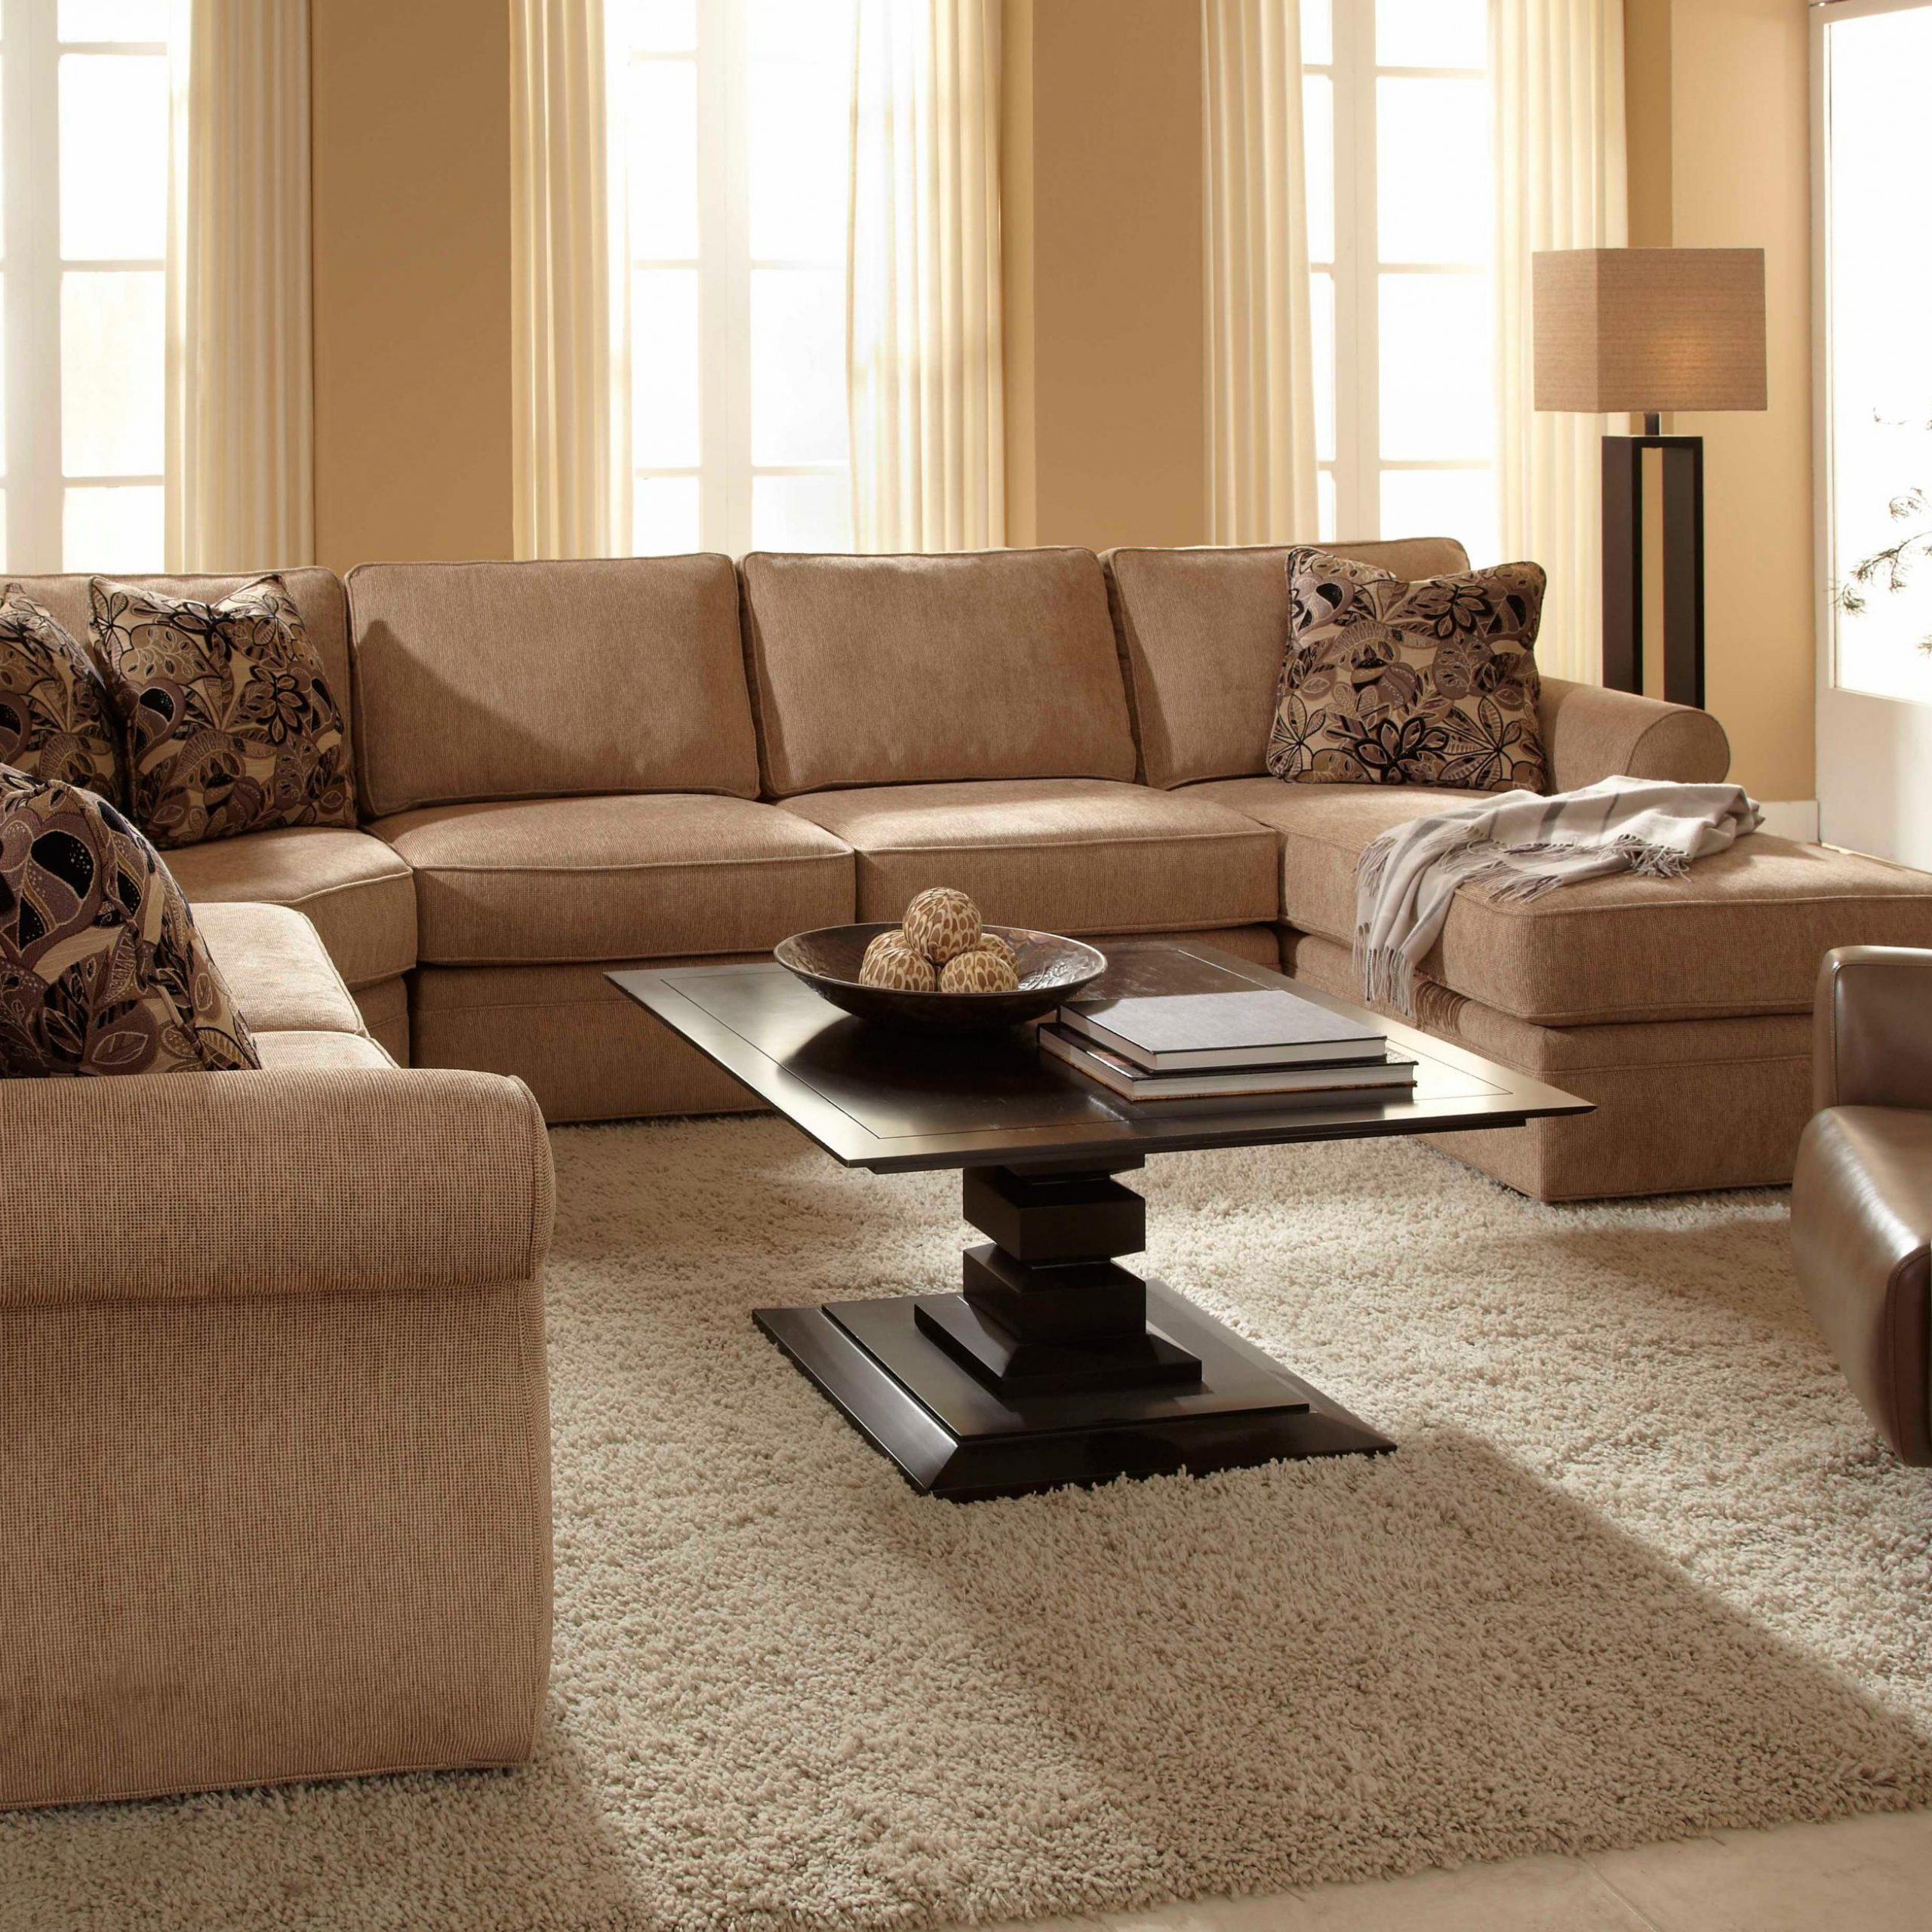 Broyhill Express Veronica Quick Ship Sectional Sofa Group Regarding Broyhill Sectional Sofas (Photo 11 of 15)